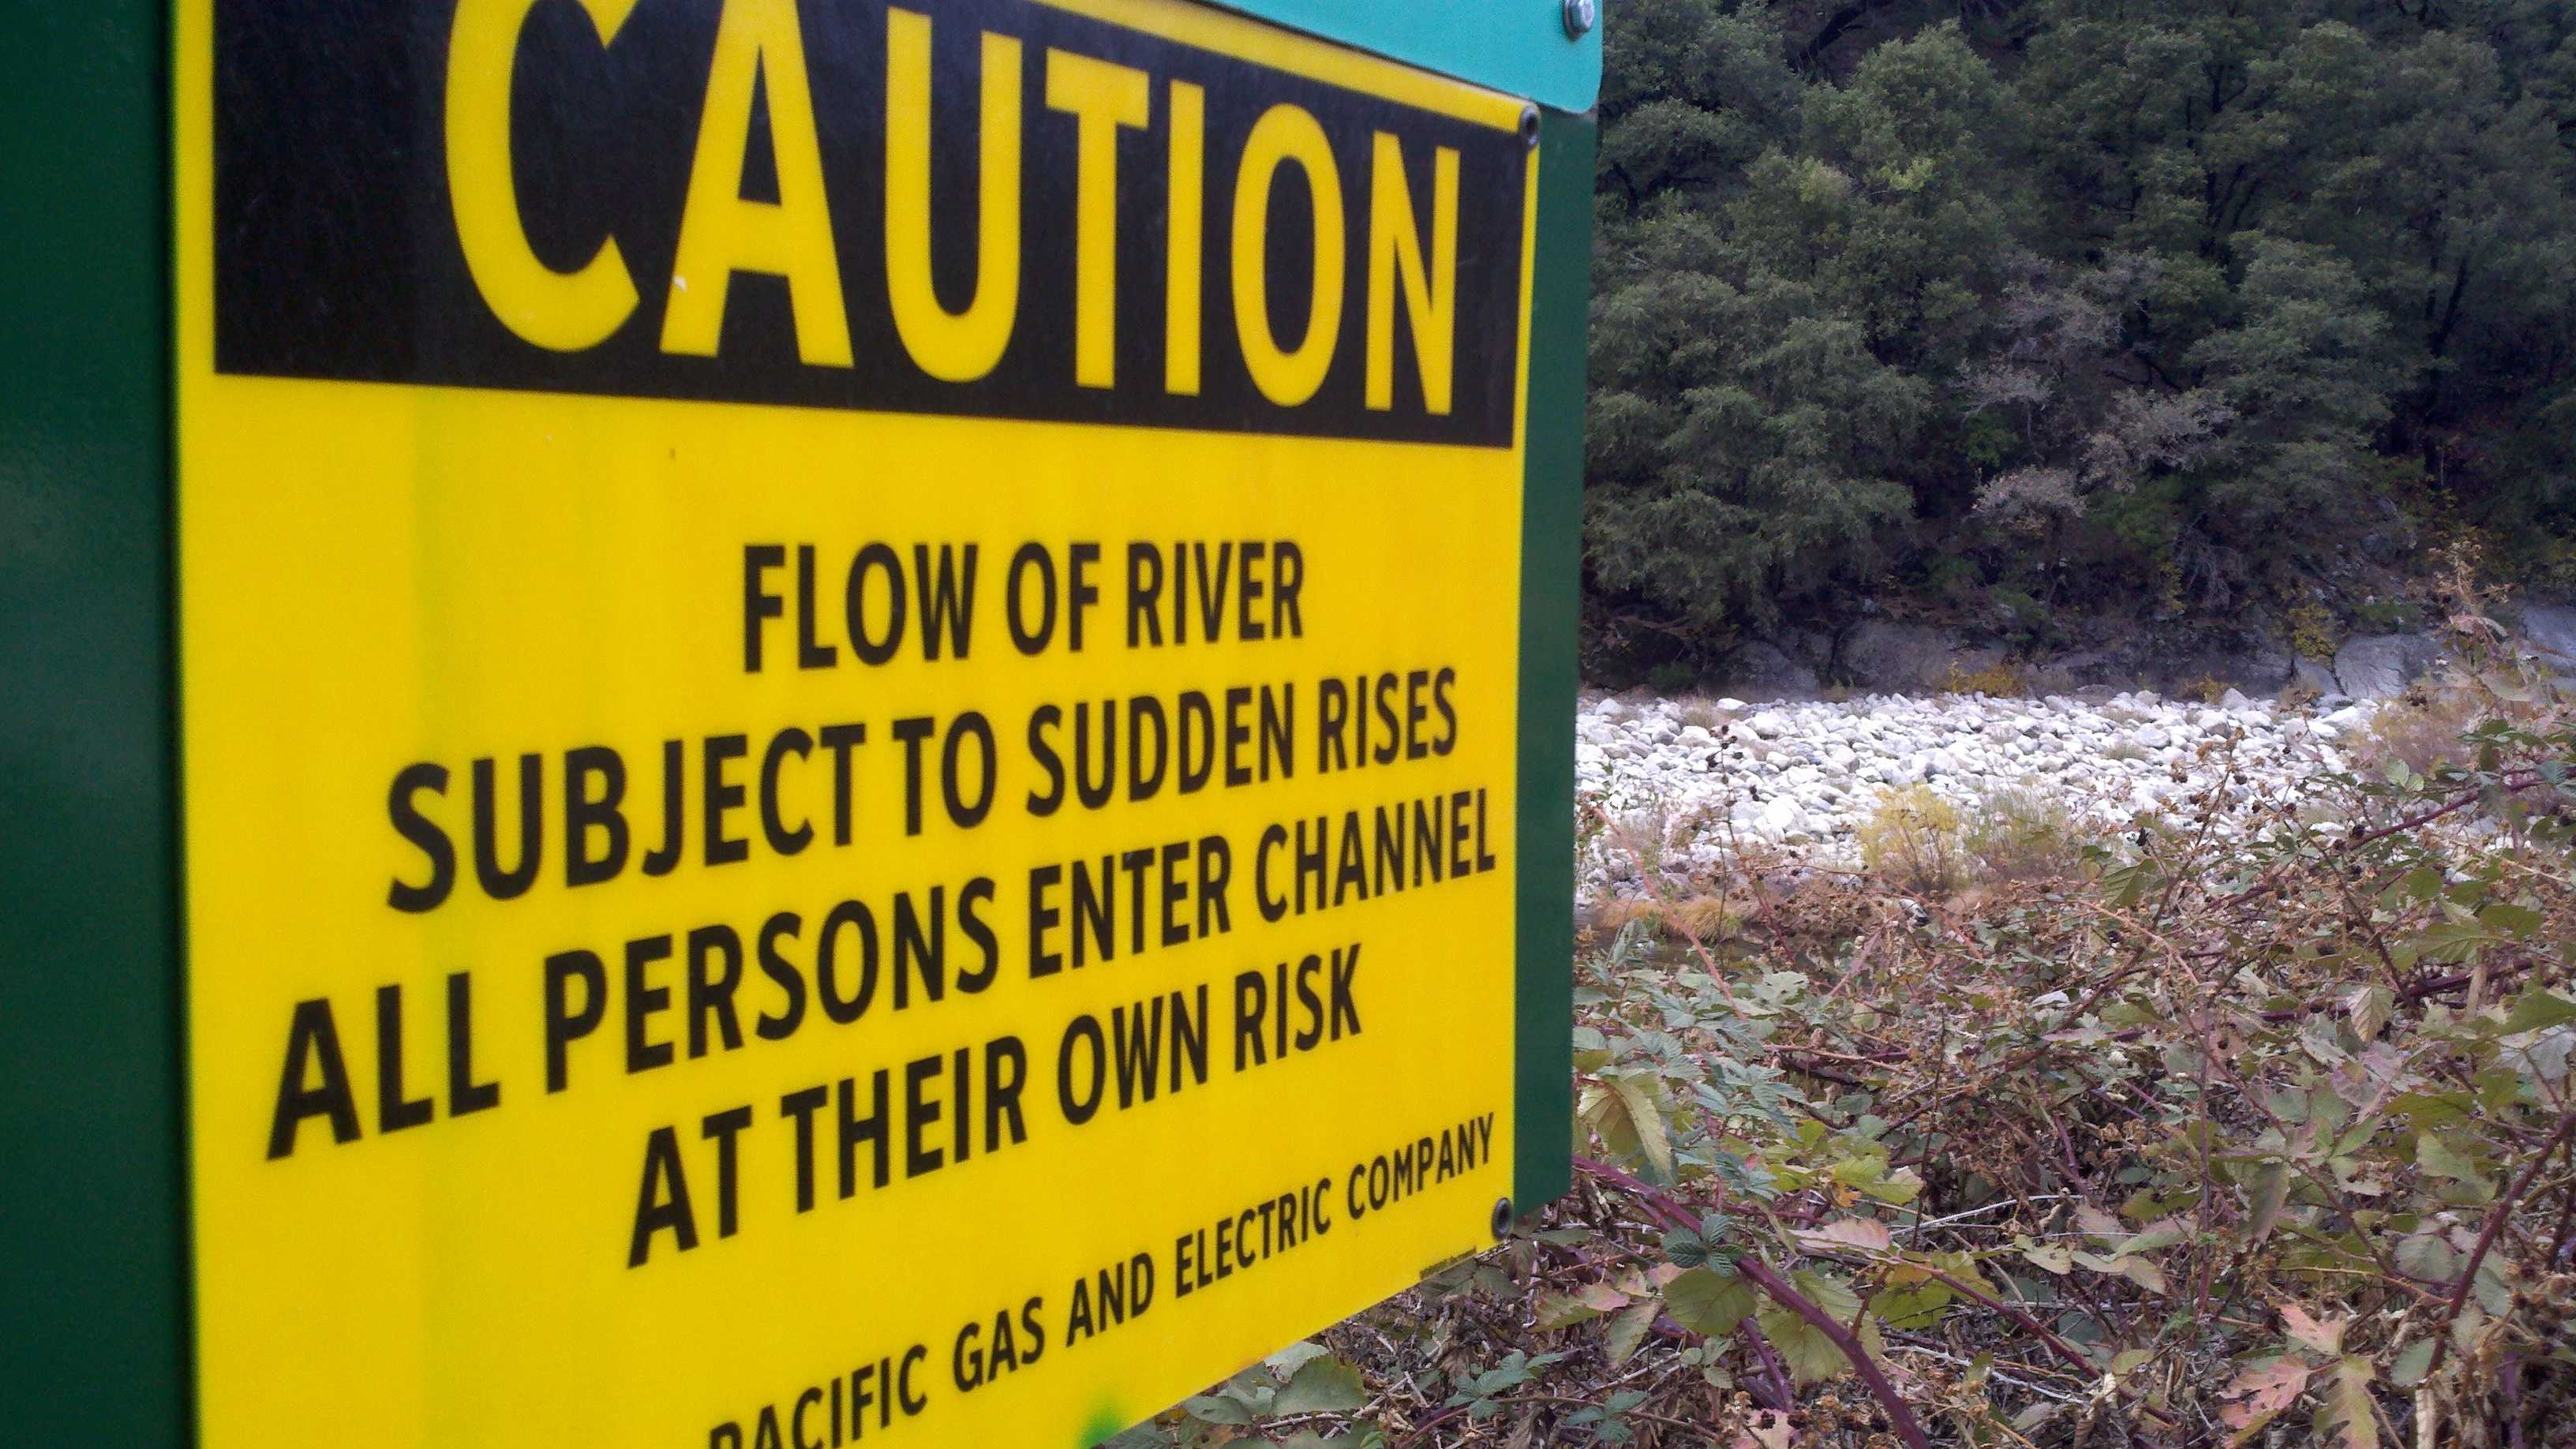 Feather River warning sign